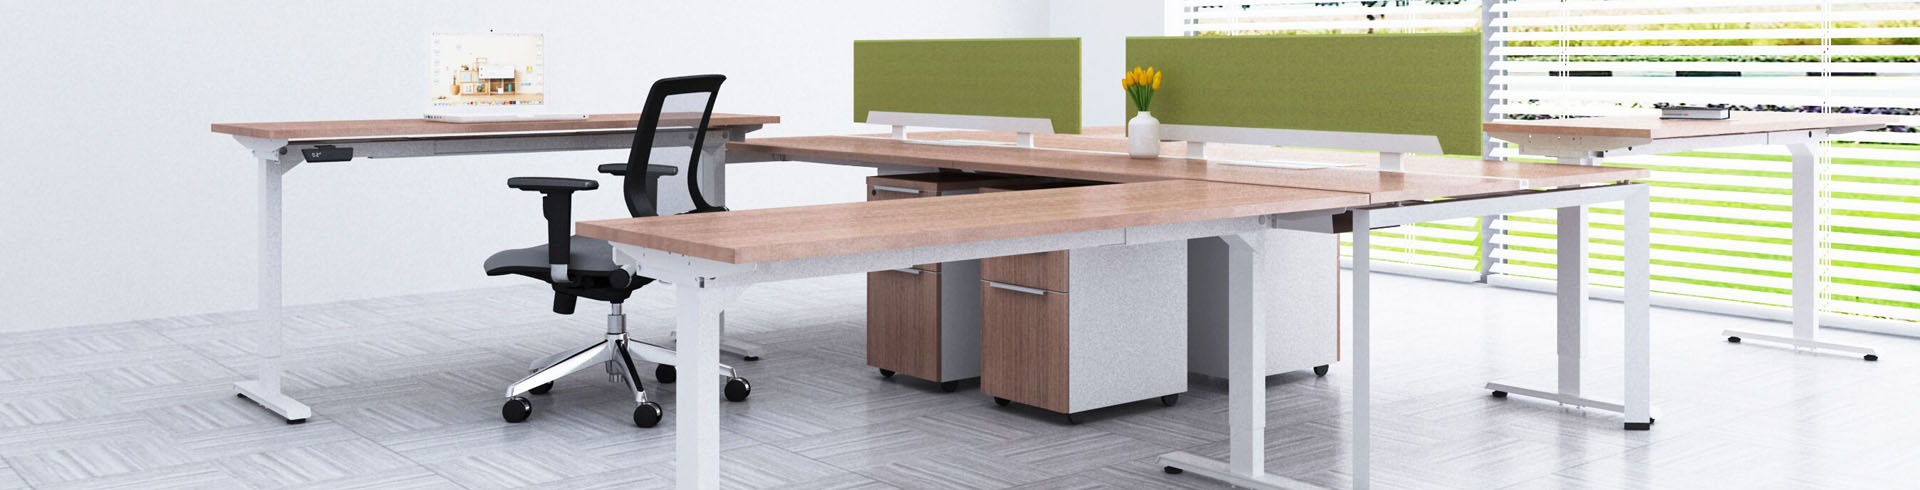 everything for offices | new & used office furniture in denver and